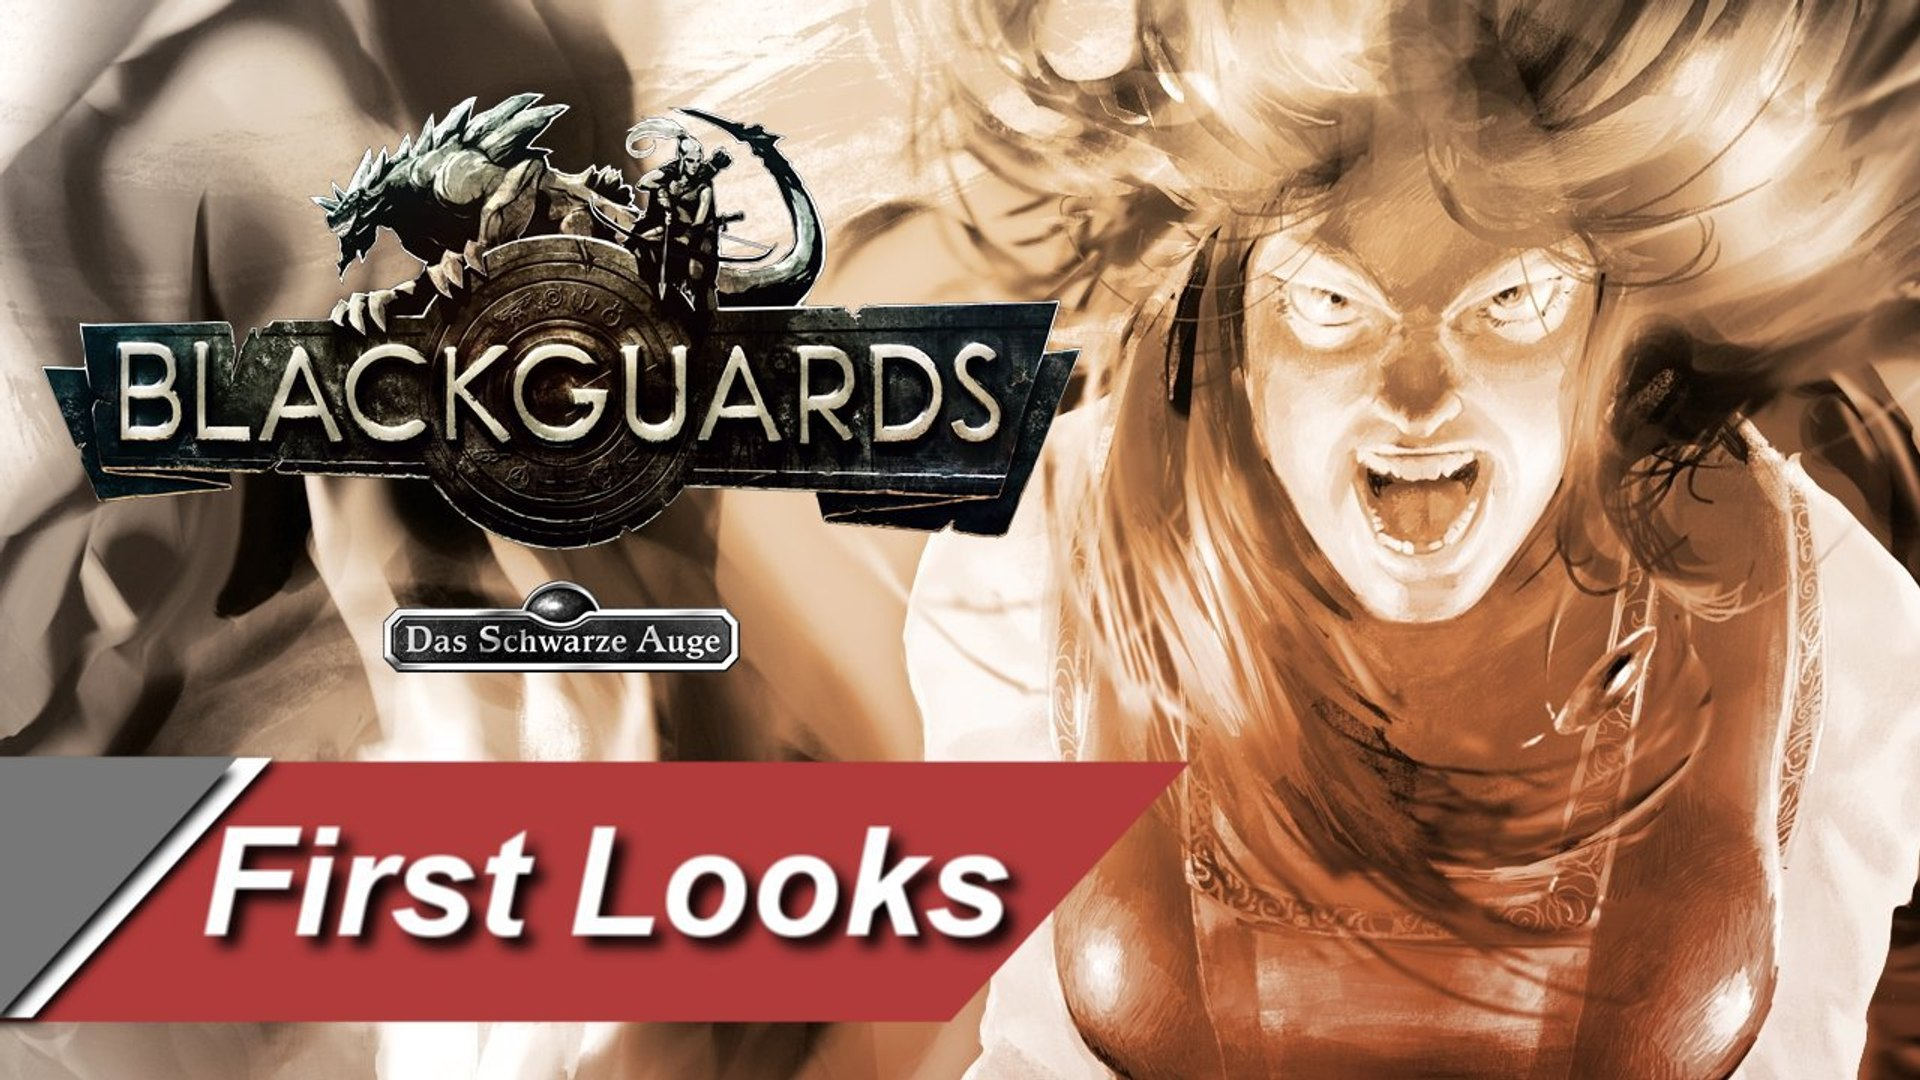 Das Schwarze Auge: Blackguards - First Looks/Gameplay - Games-Panorama HD DE